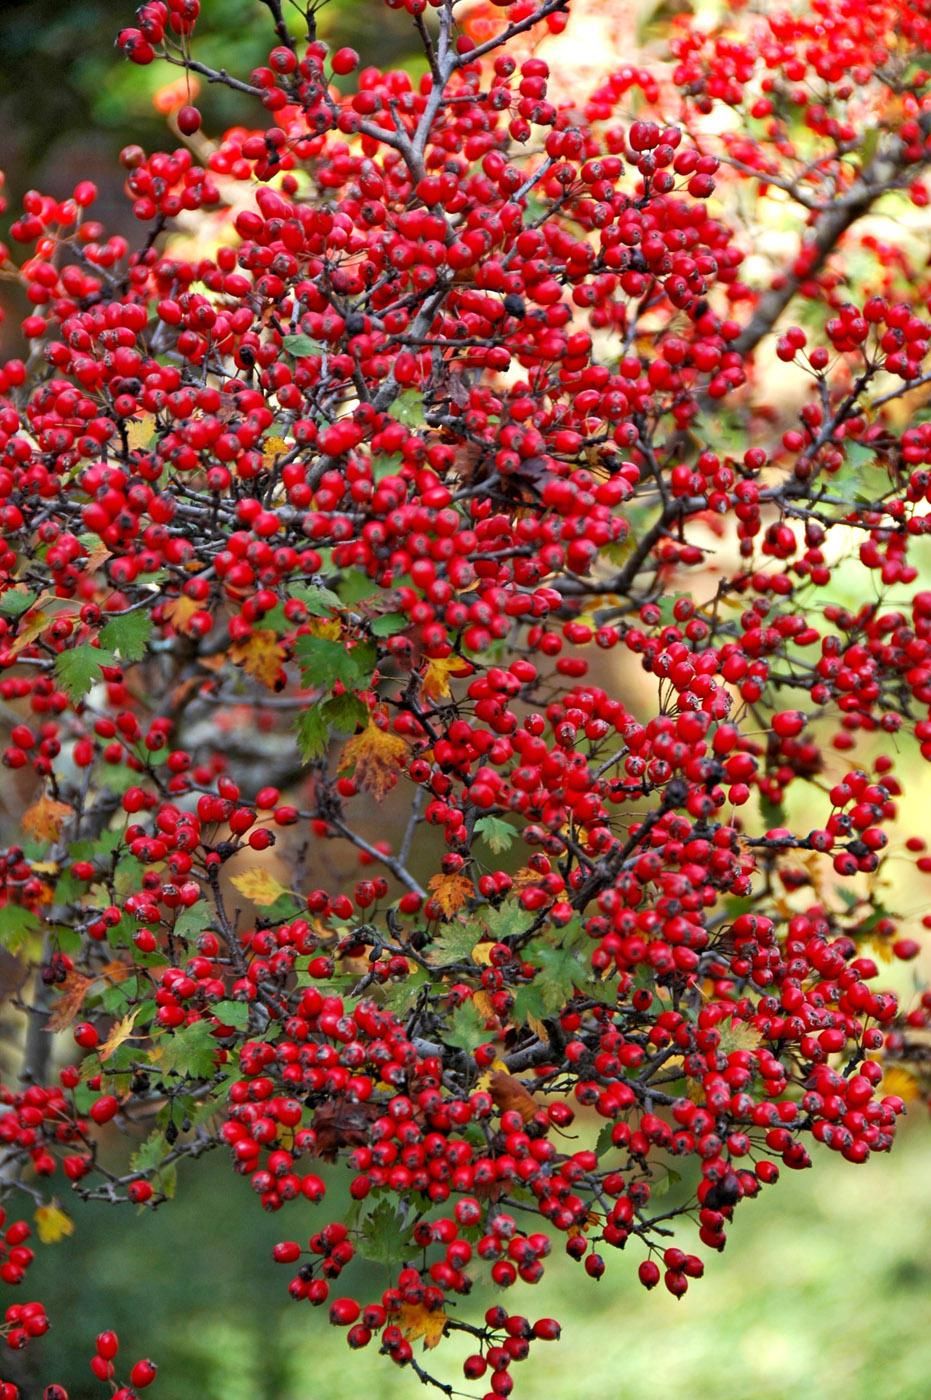 The red berries on a parsley-leaved hawthorn tree show from a great distance as the sun shows off their brilliant color.